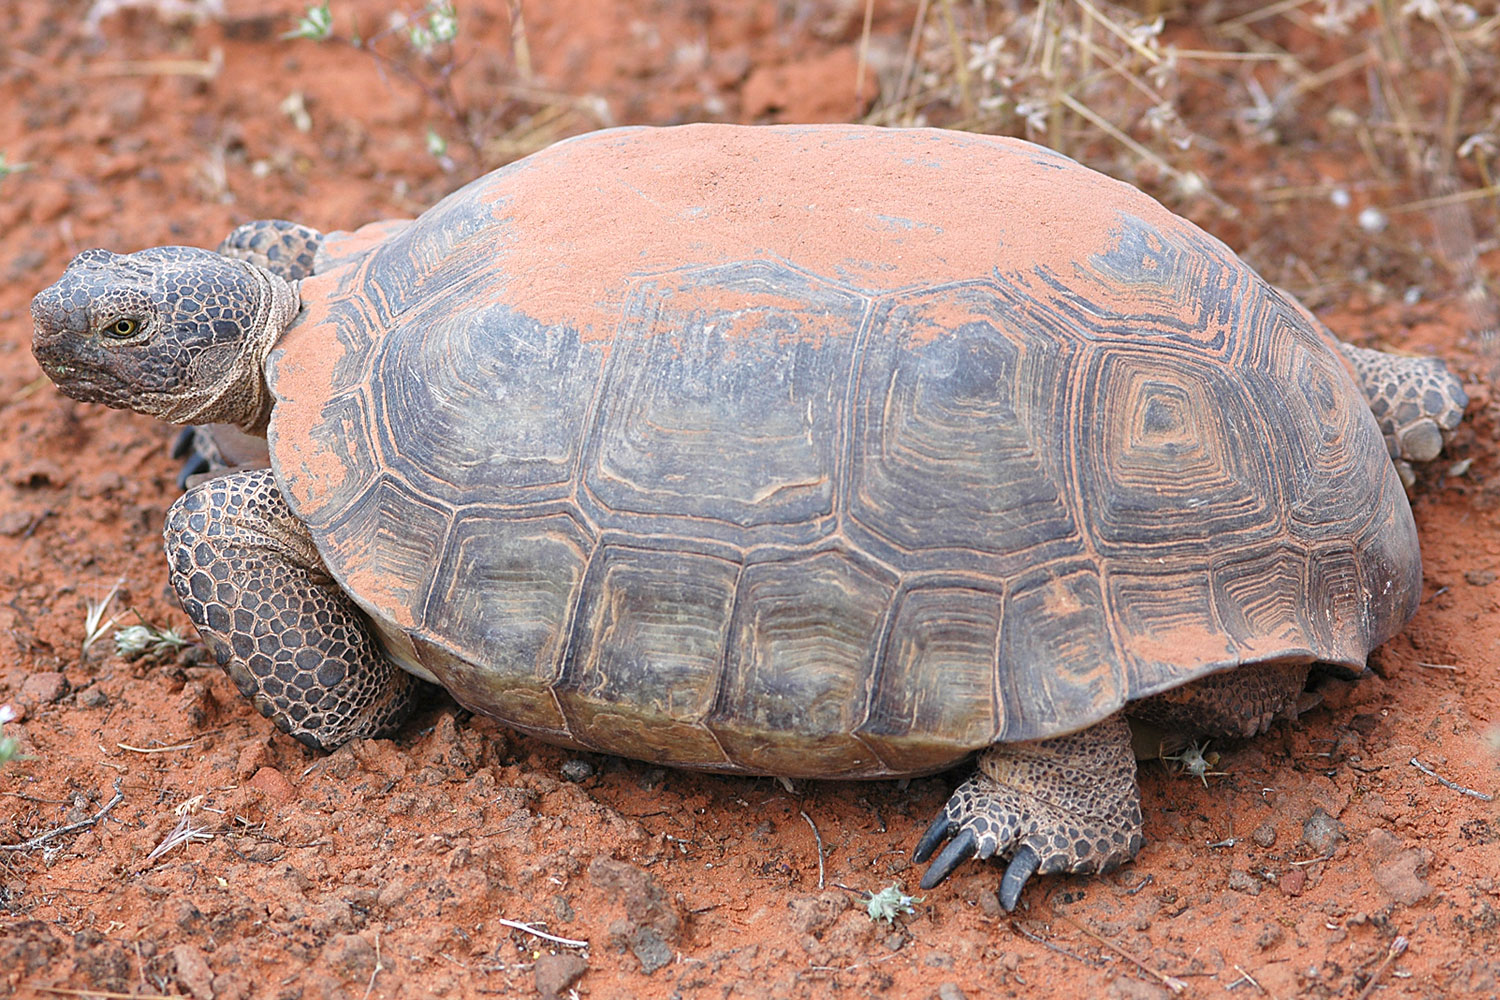 north american desert tortoise - These medium size tortoises have adapted to living in dry, arid climates.